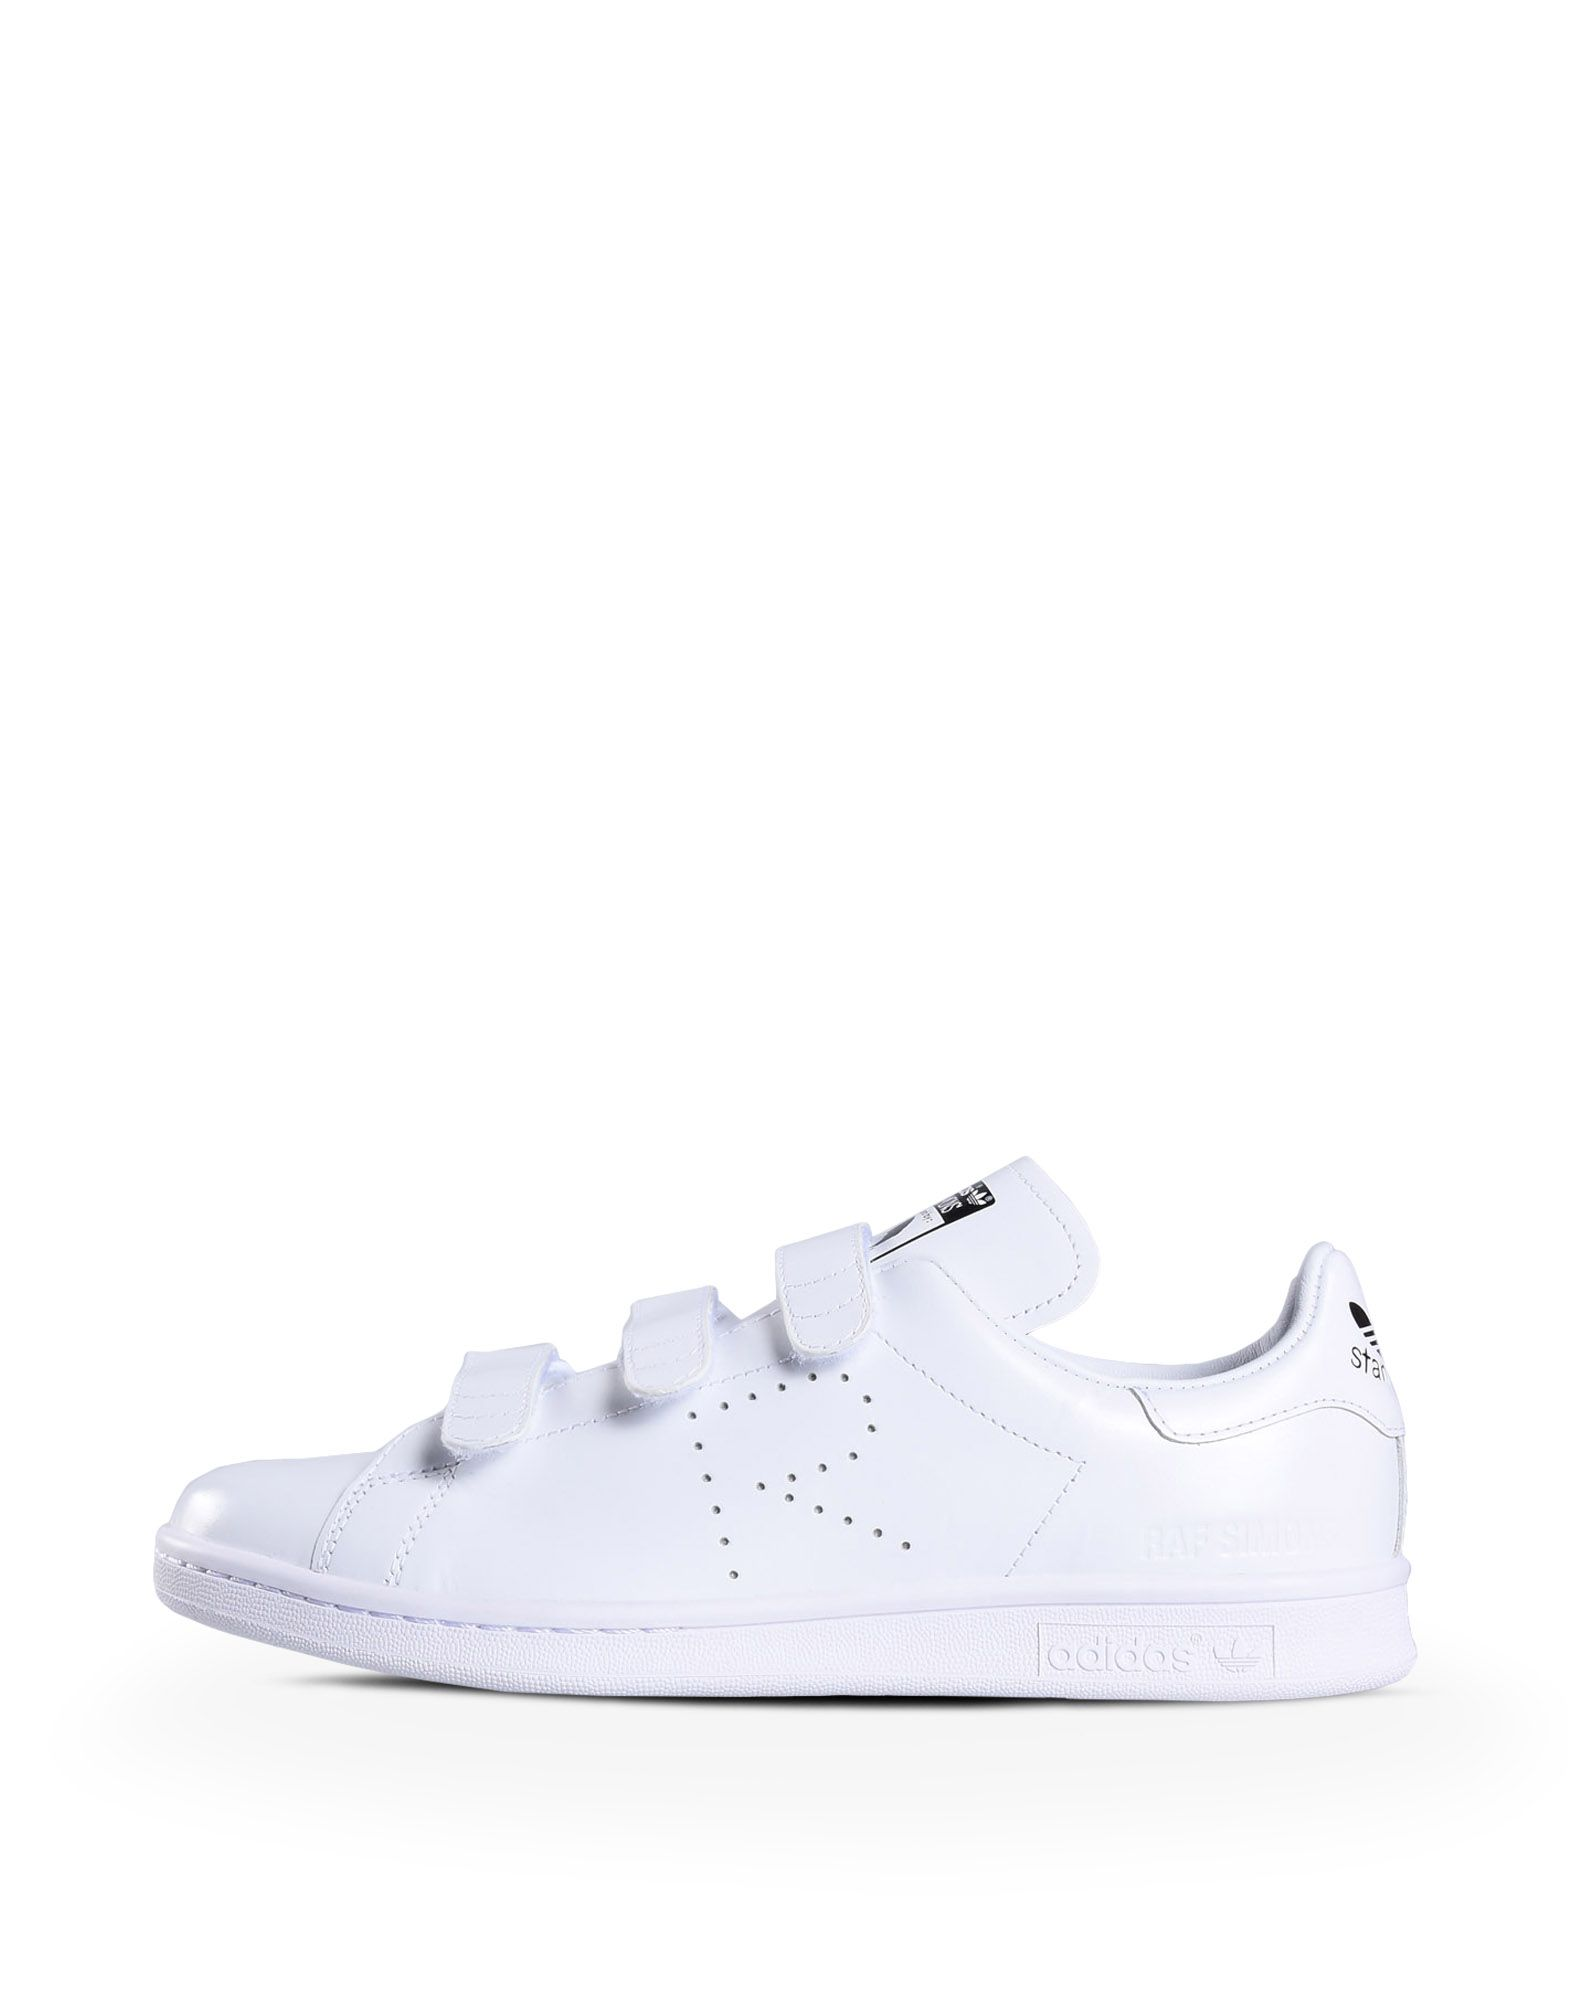 raf simons stan smith comfort trainers adidas y 3. Black Bedroom Furniture Sets. Home Design Ideas